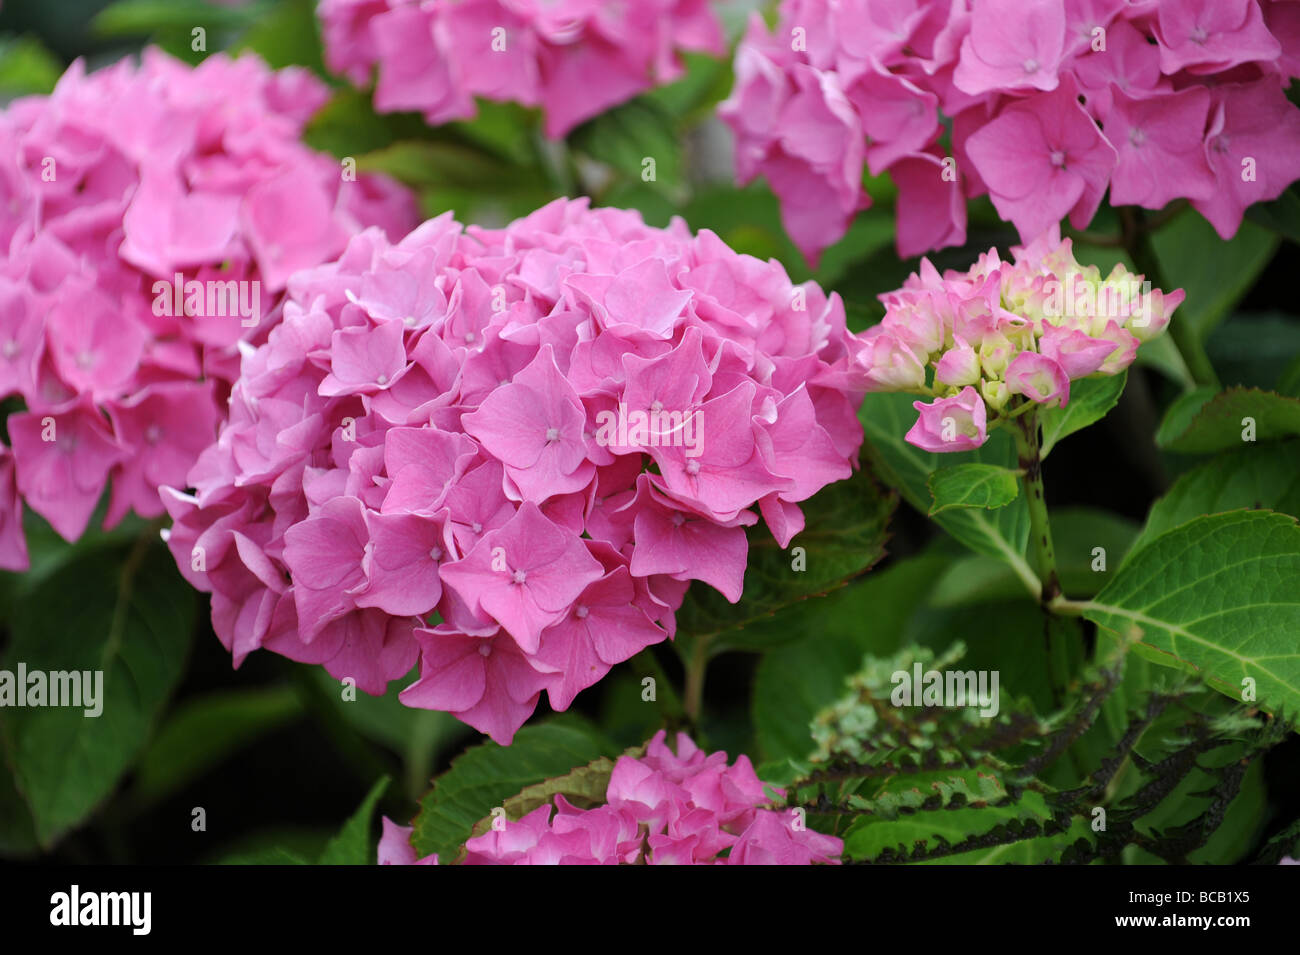 Pink Hydrangea in flower - Stock Image